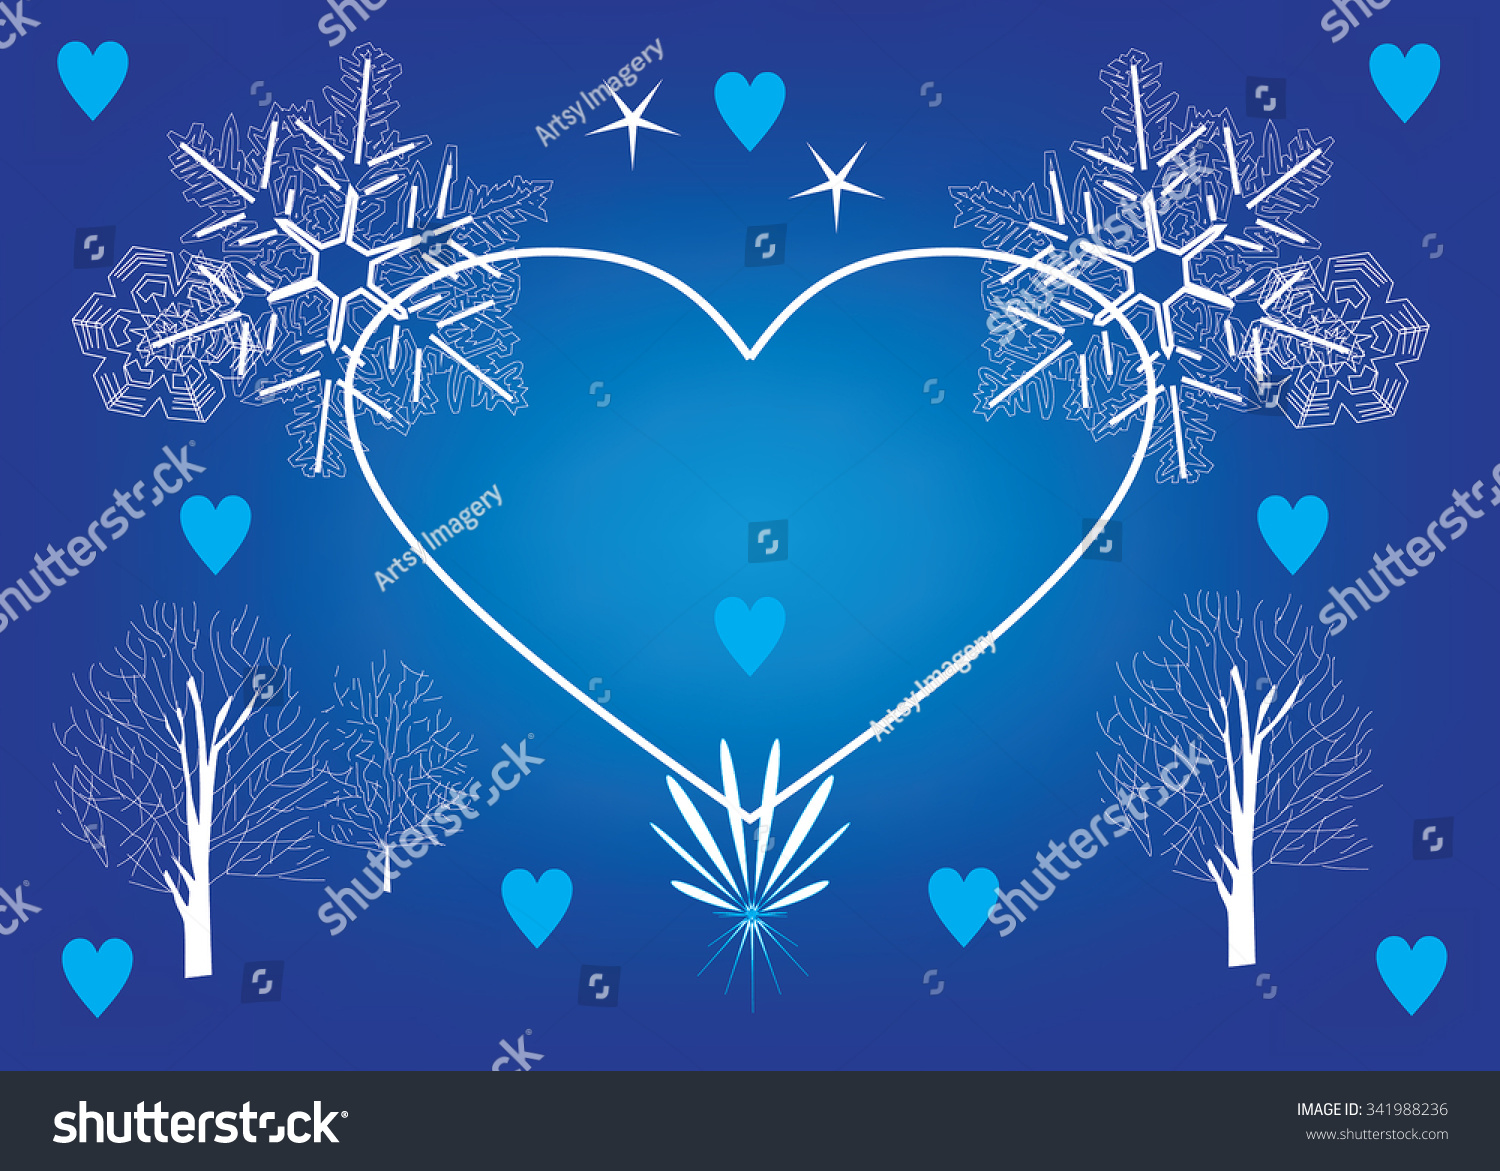 Blue christmas card template with white snowflakes